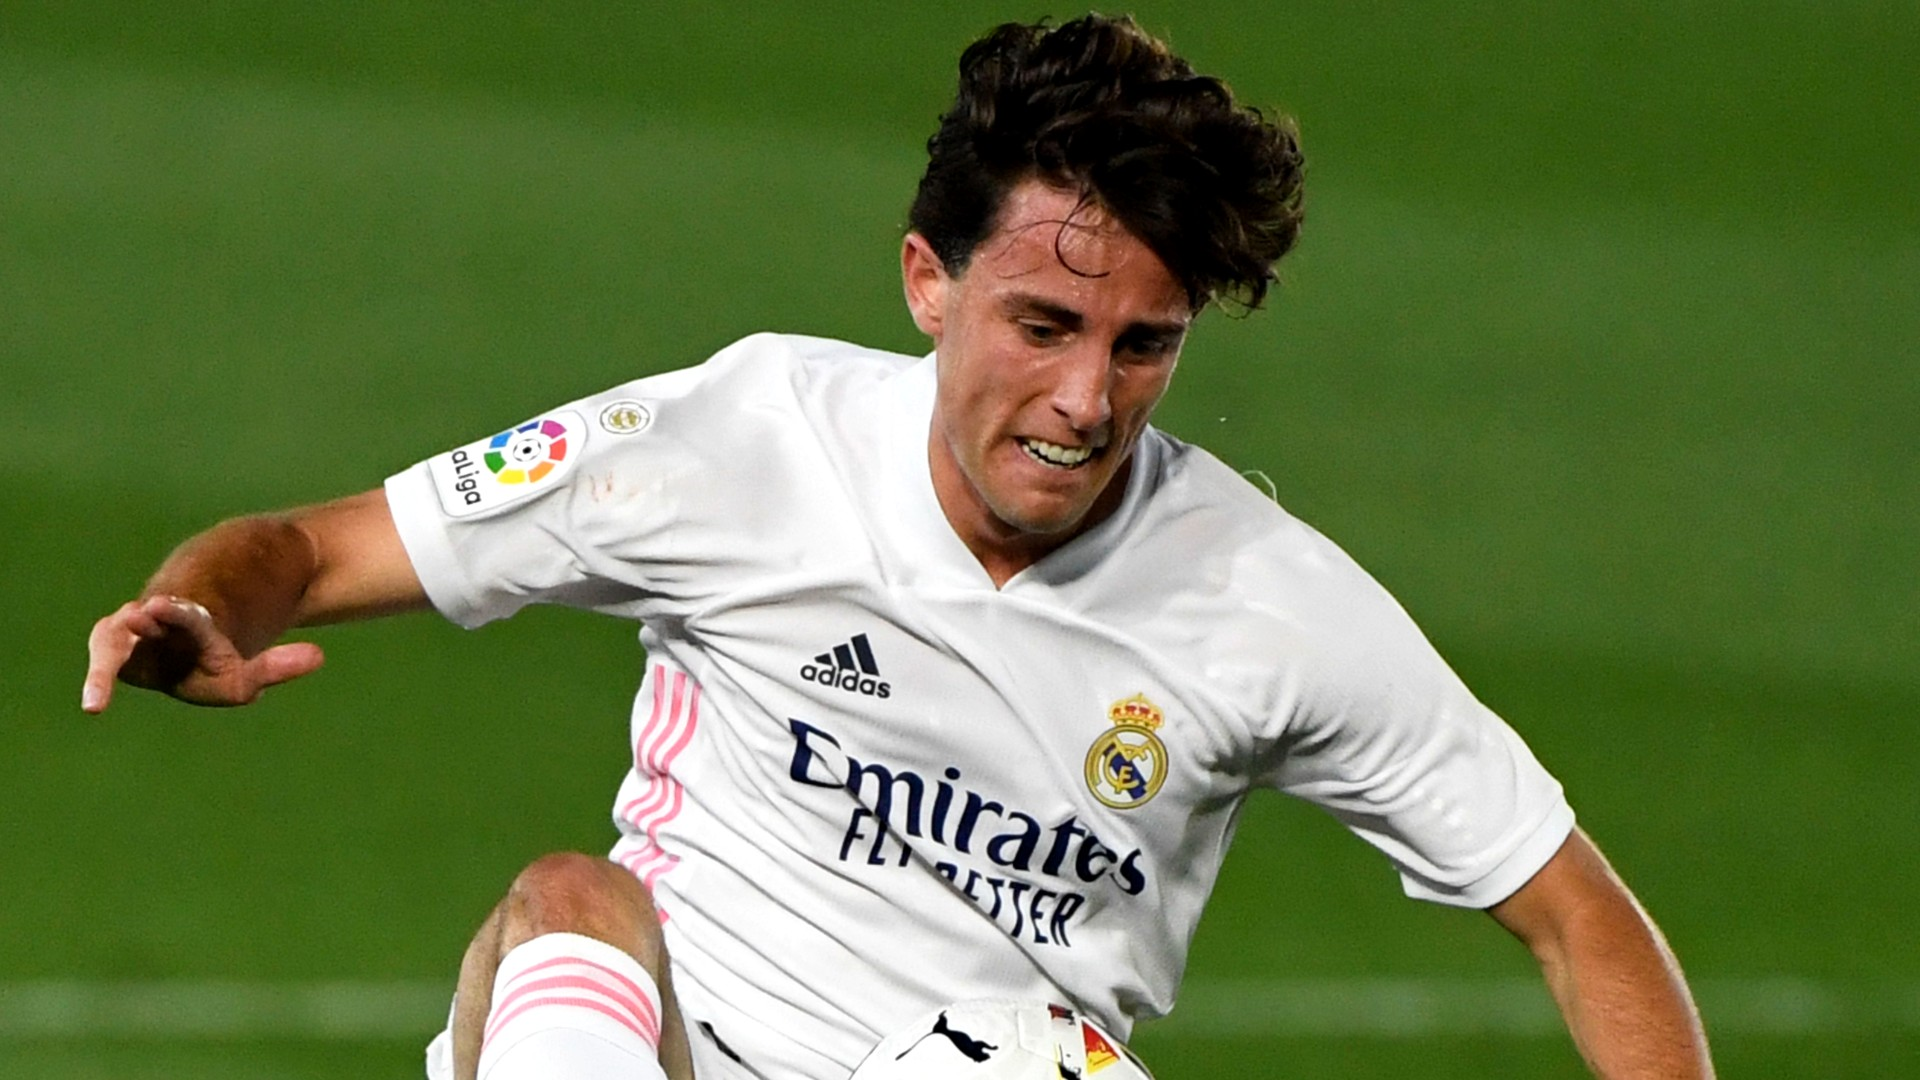 Real Madrid, l'incredibile storia di Odriozola: da campione a… invisibile